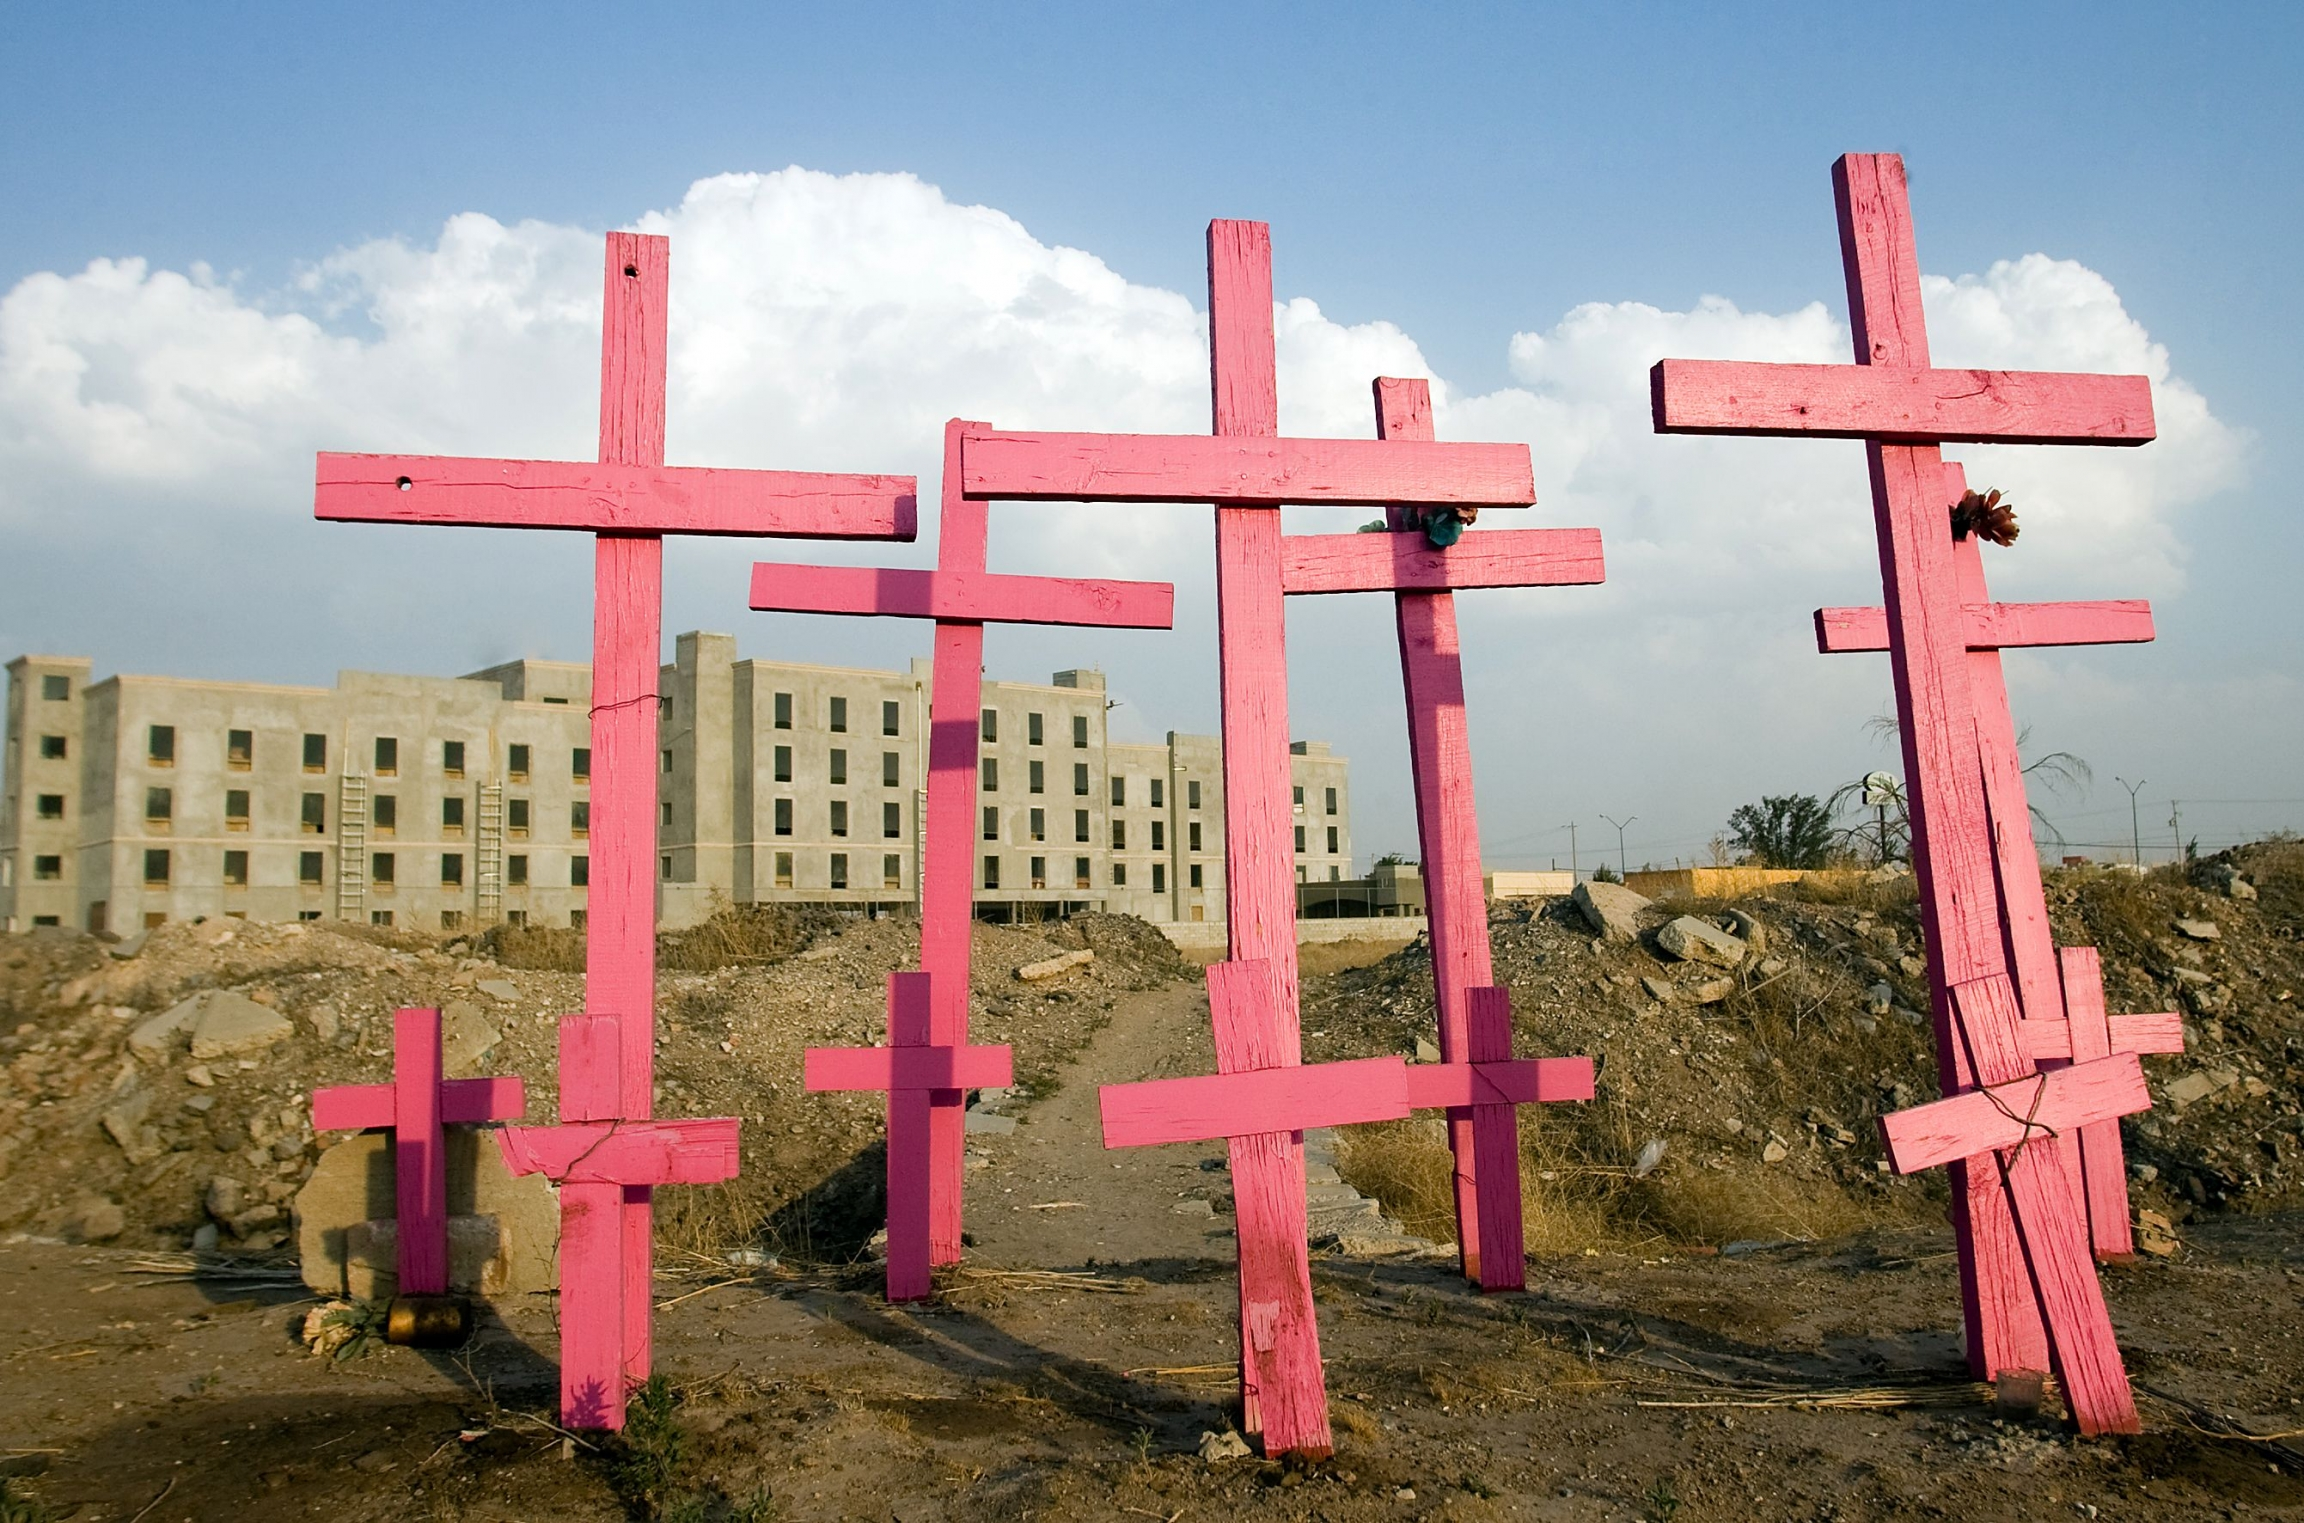 Bright pink crosses used to memorialize where bodies were found.